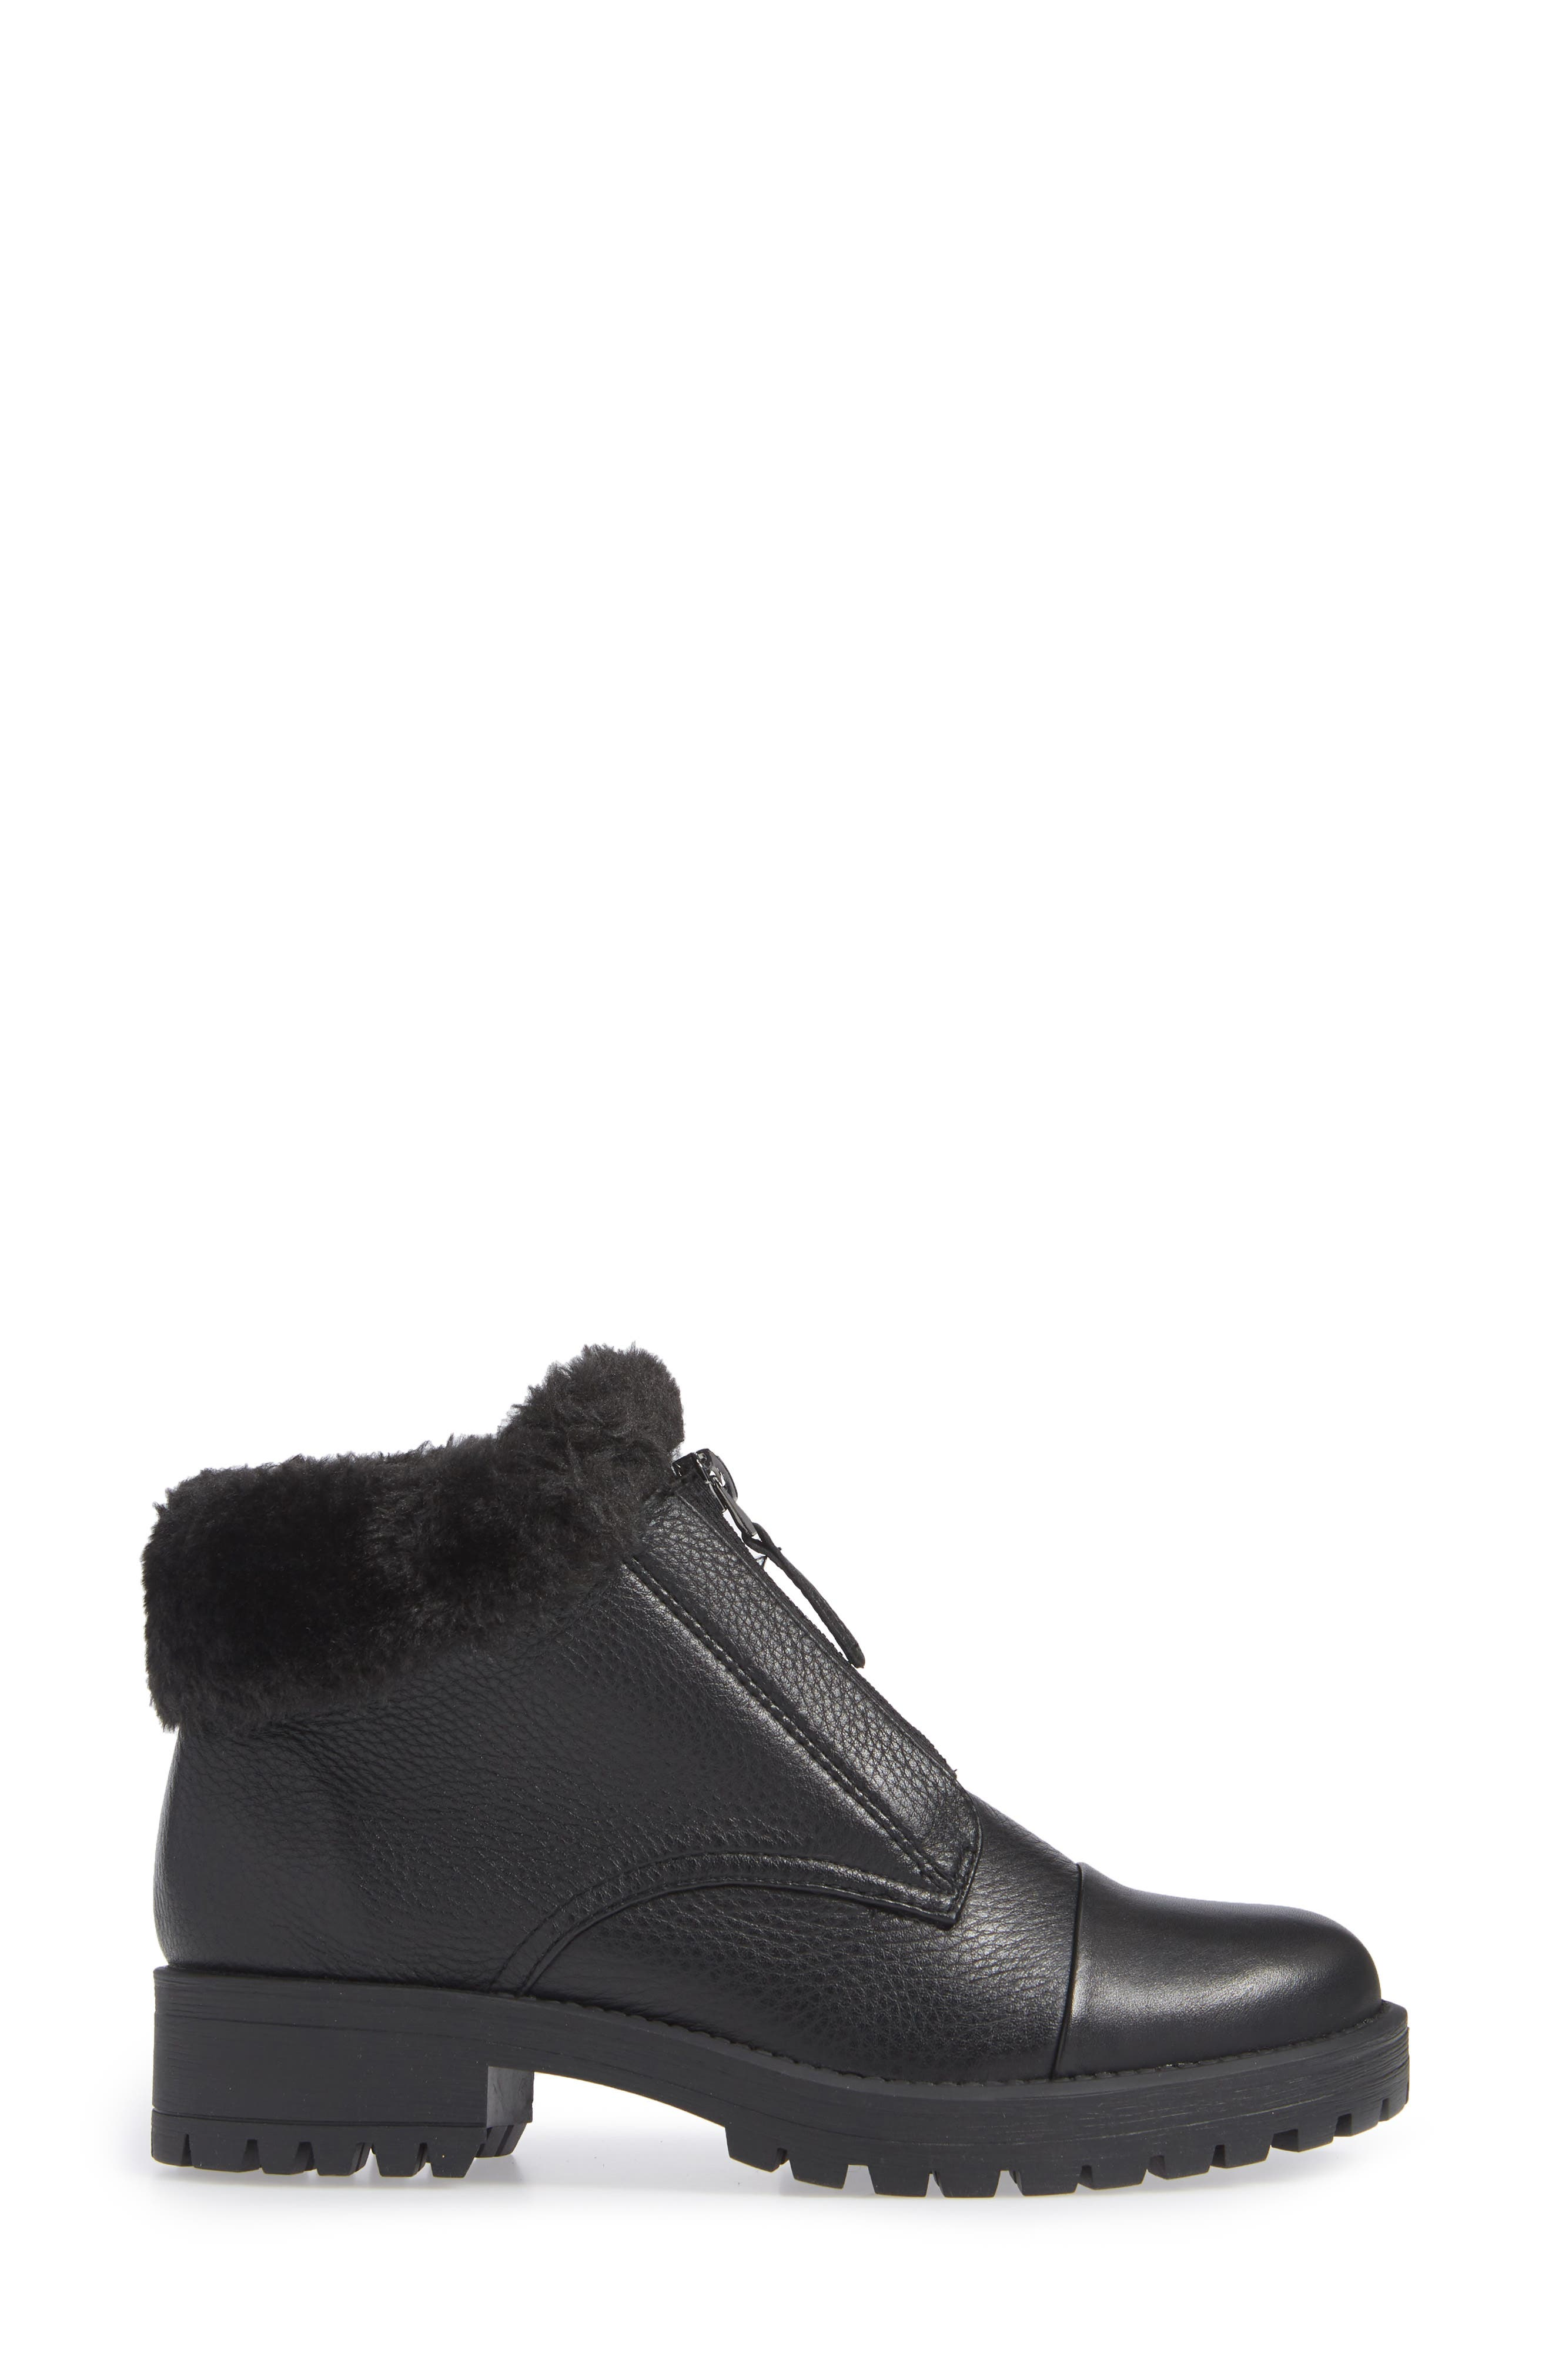 SUDINI,                             Yesnia Bootie,                             Alternate thumbnail 3, color,                             001